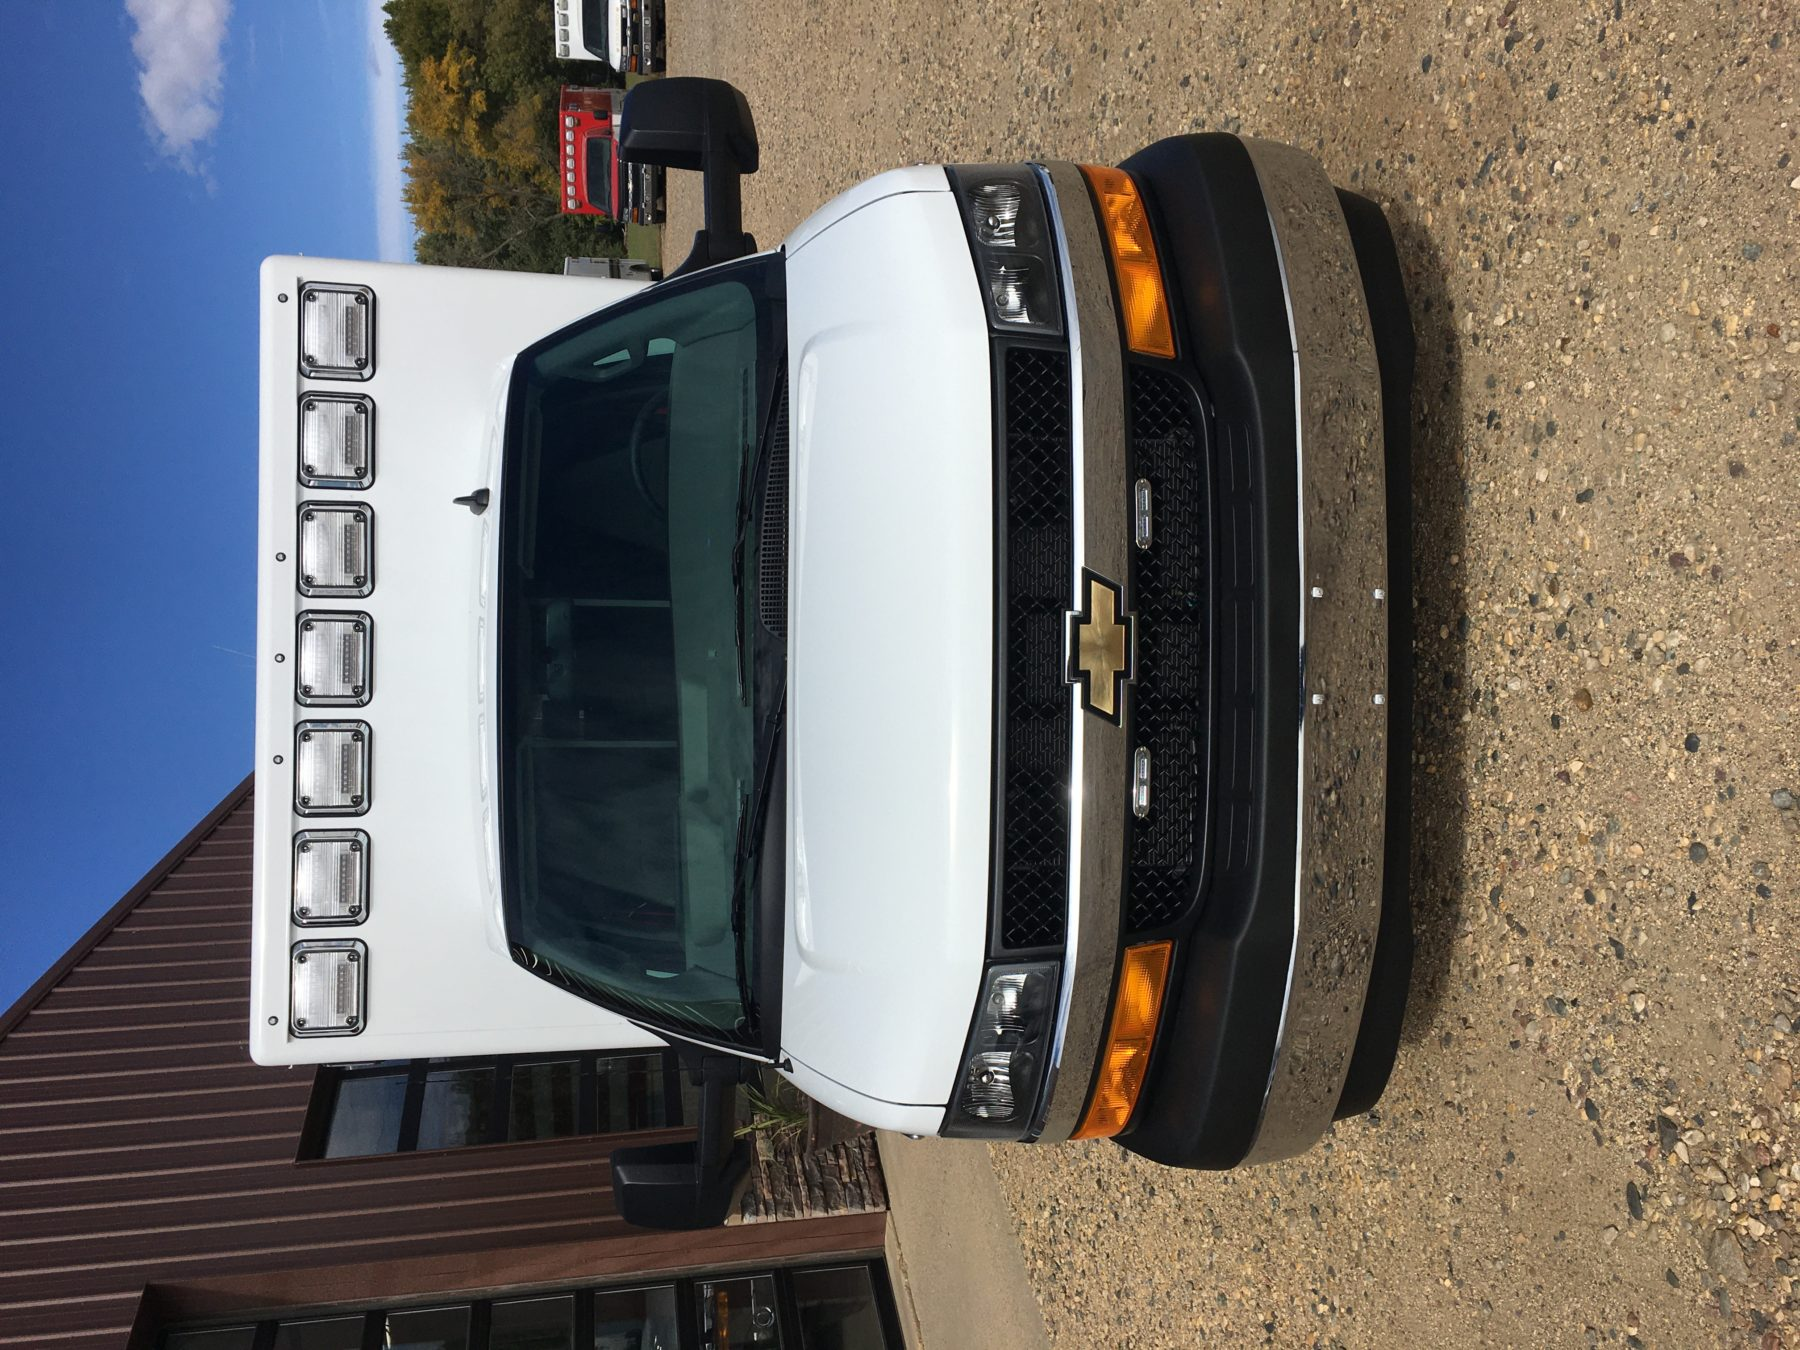 2020 Chevrolet G4500 Type 3 Ambulance For Sale – Picture 7